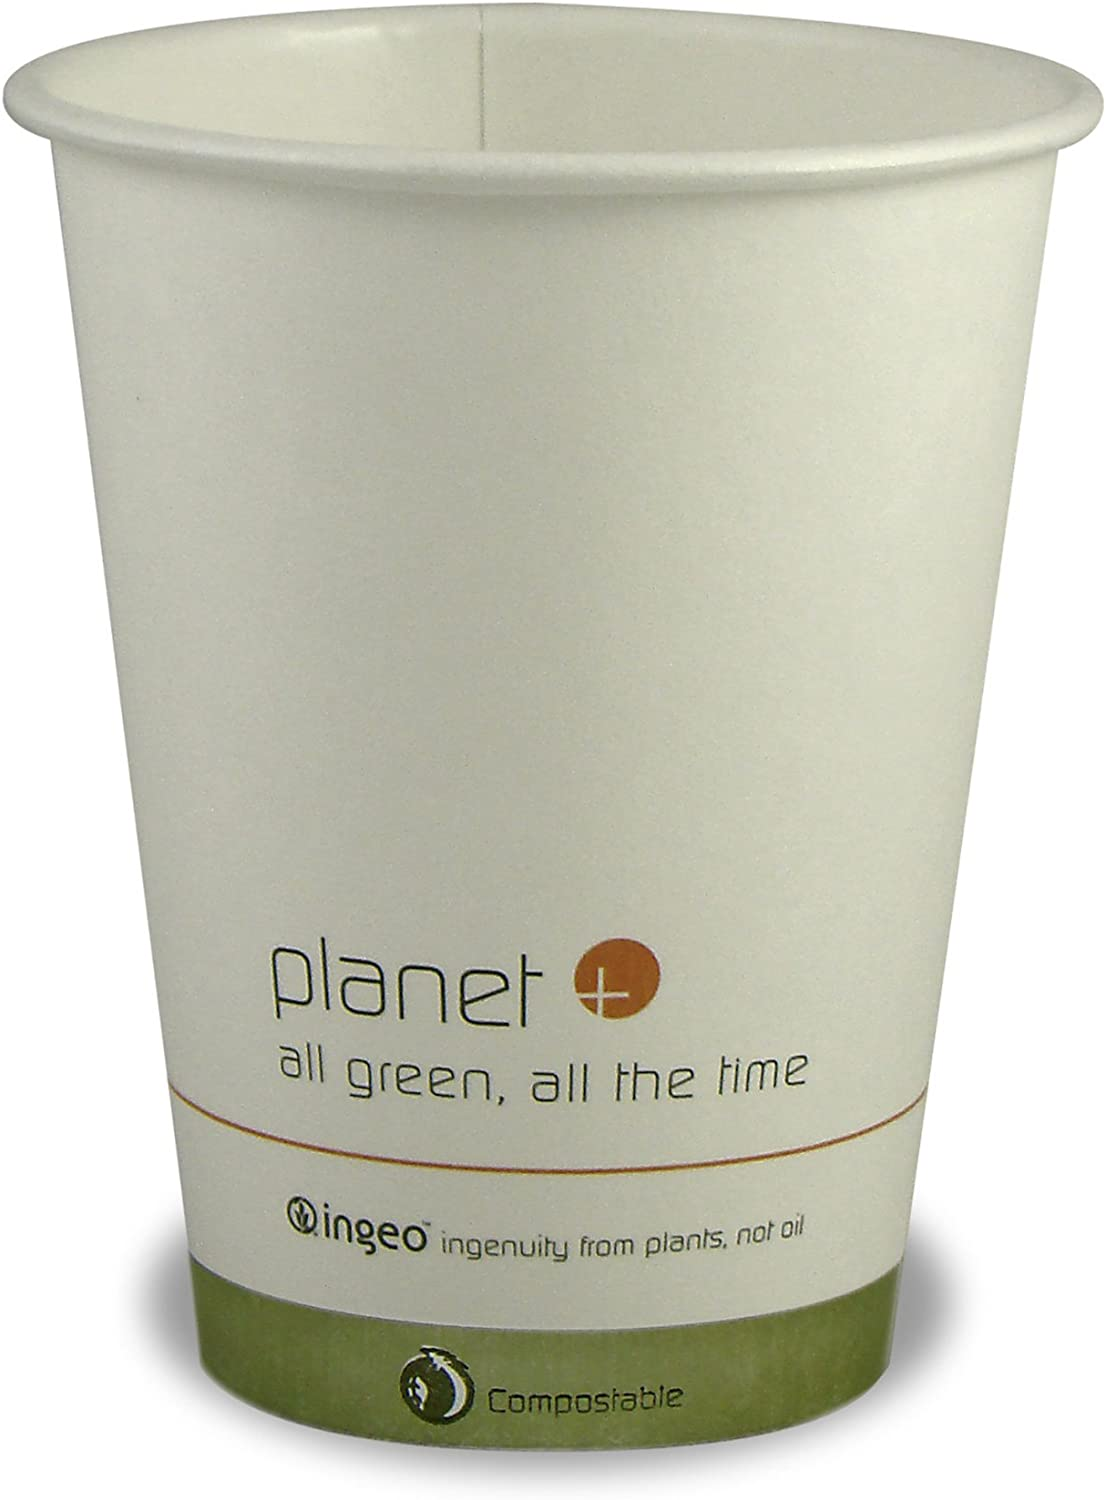 Planet + 100% Compostable PLA Laminated Hot Cup, 12-Ounce, 1000-Count Case